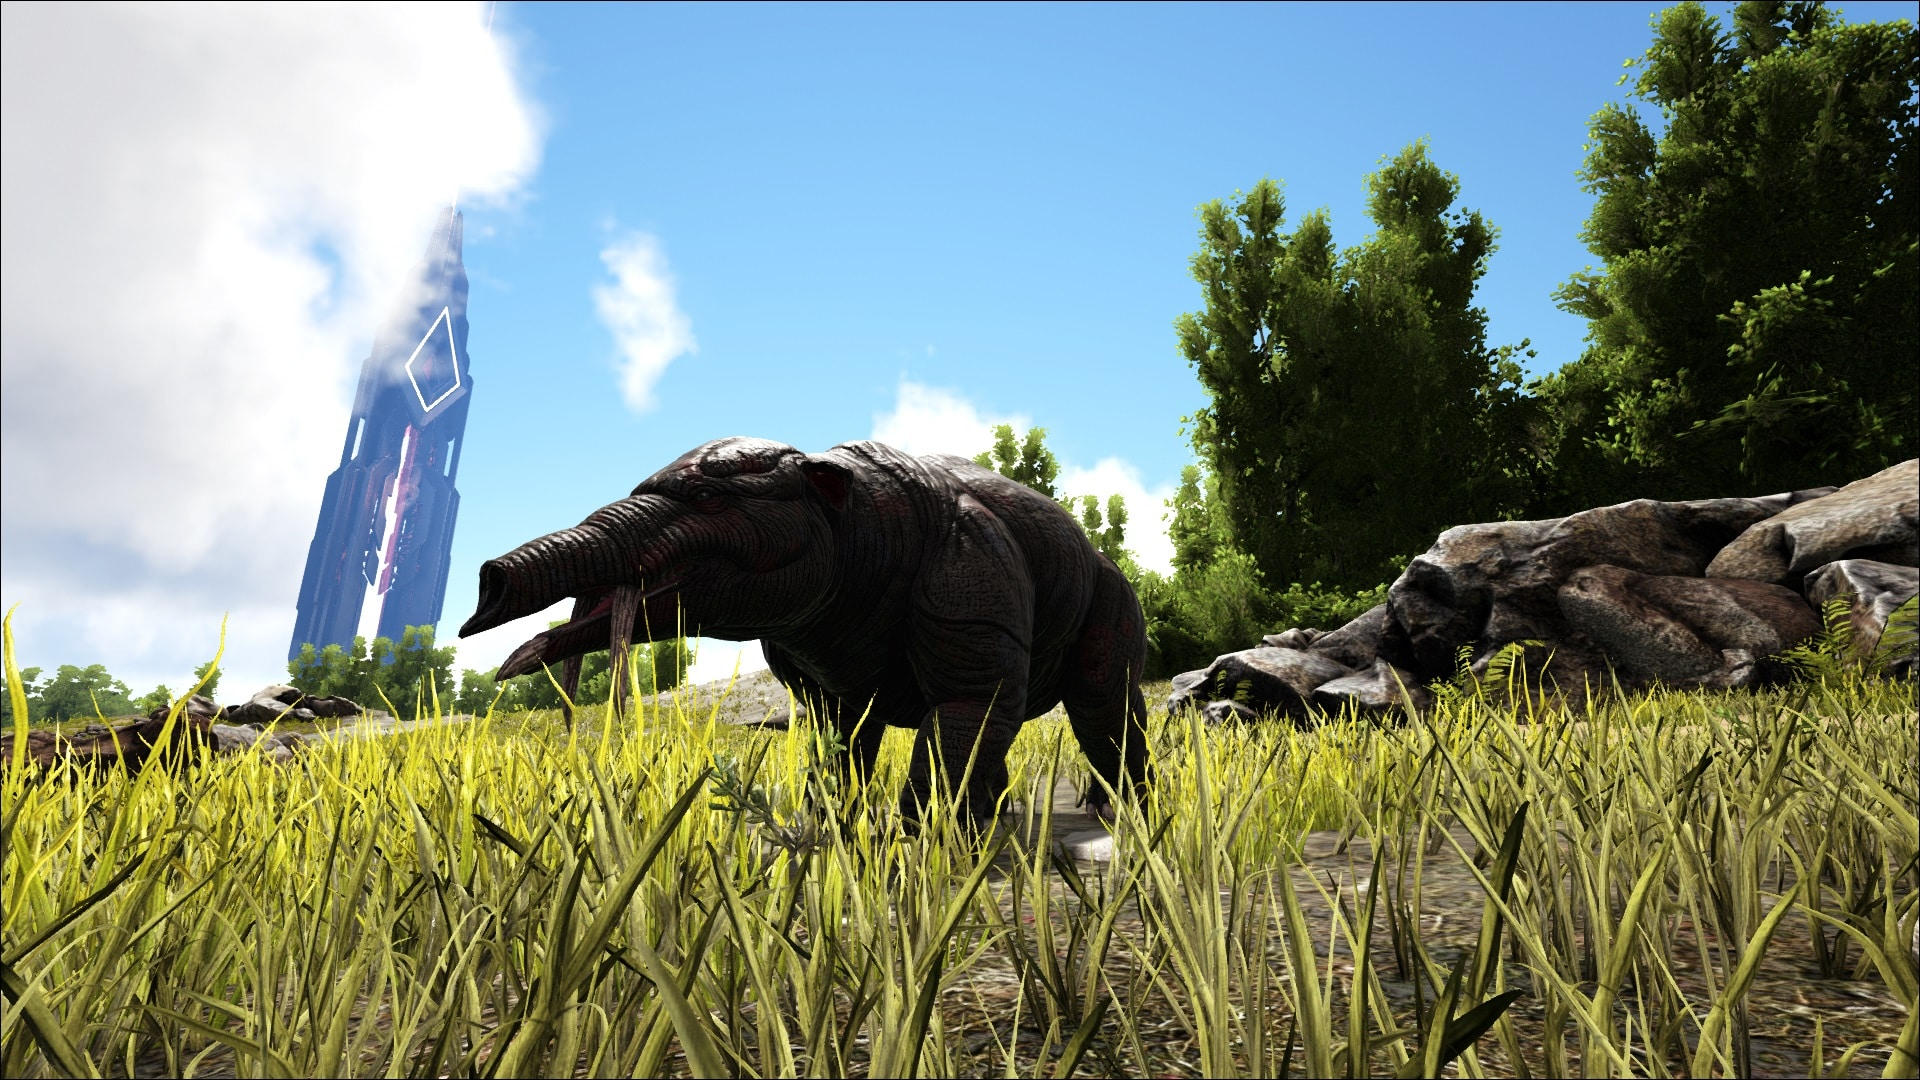 Phiomia, Ark: Survival Evolved